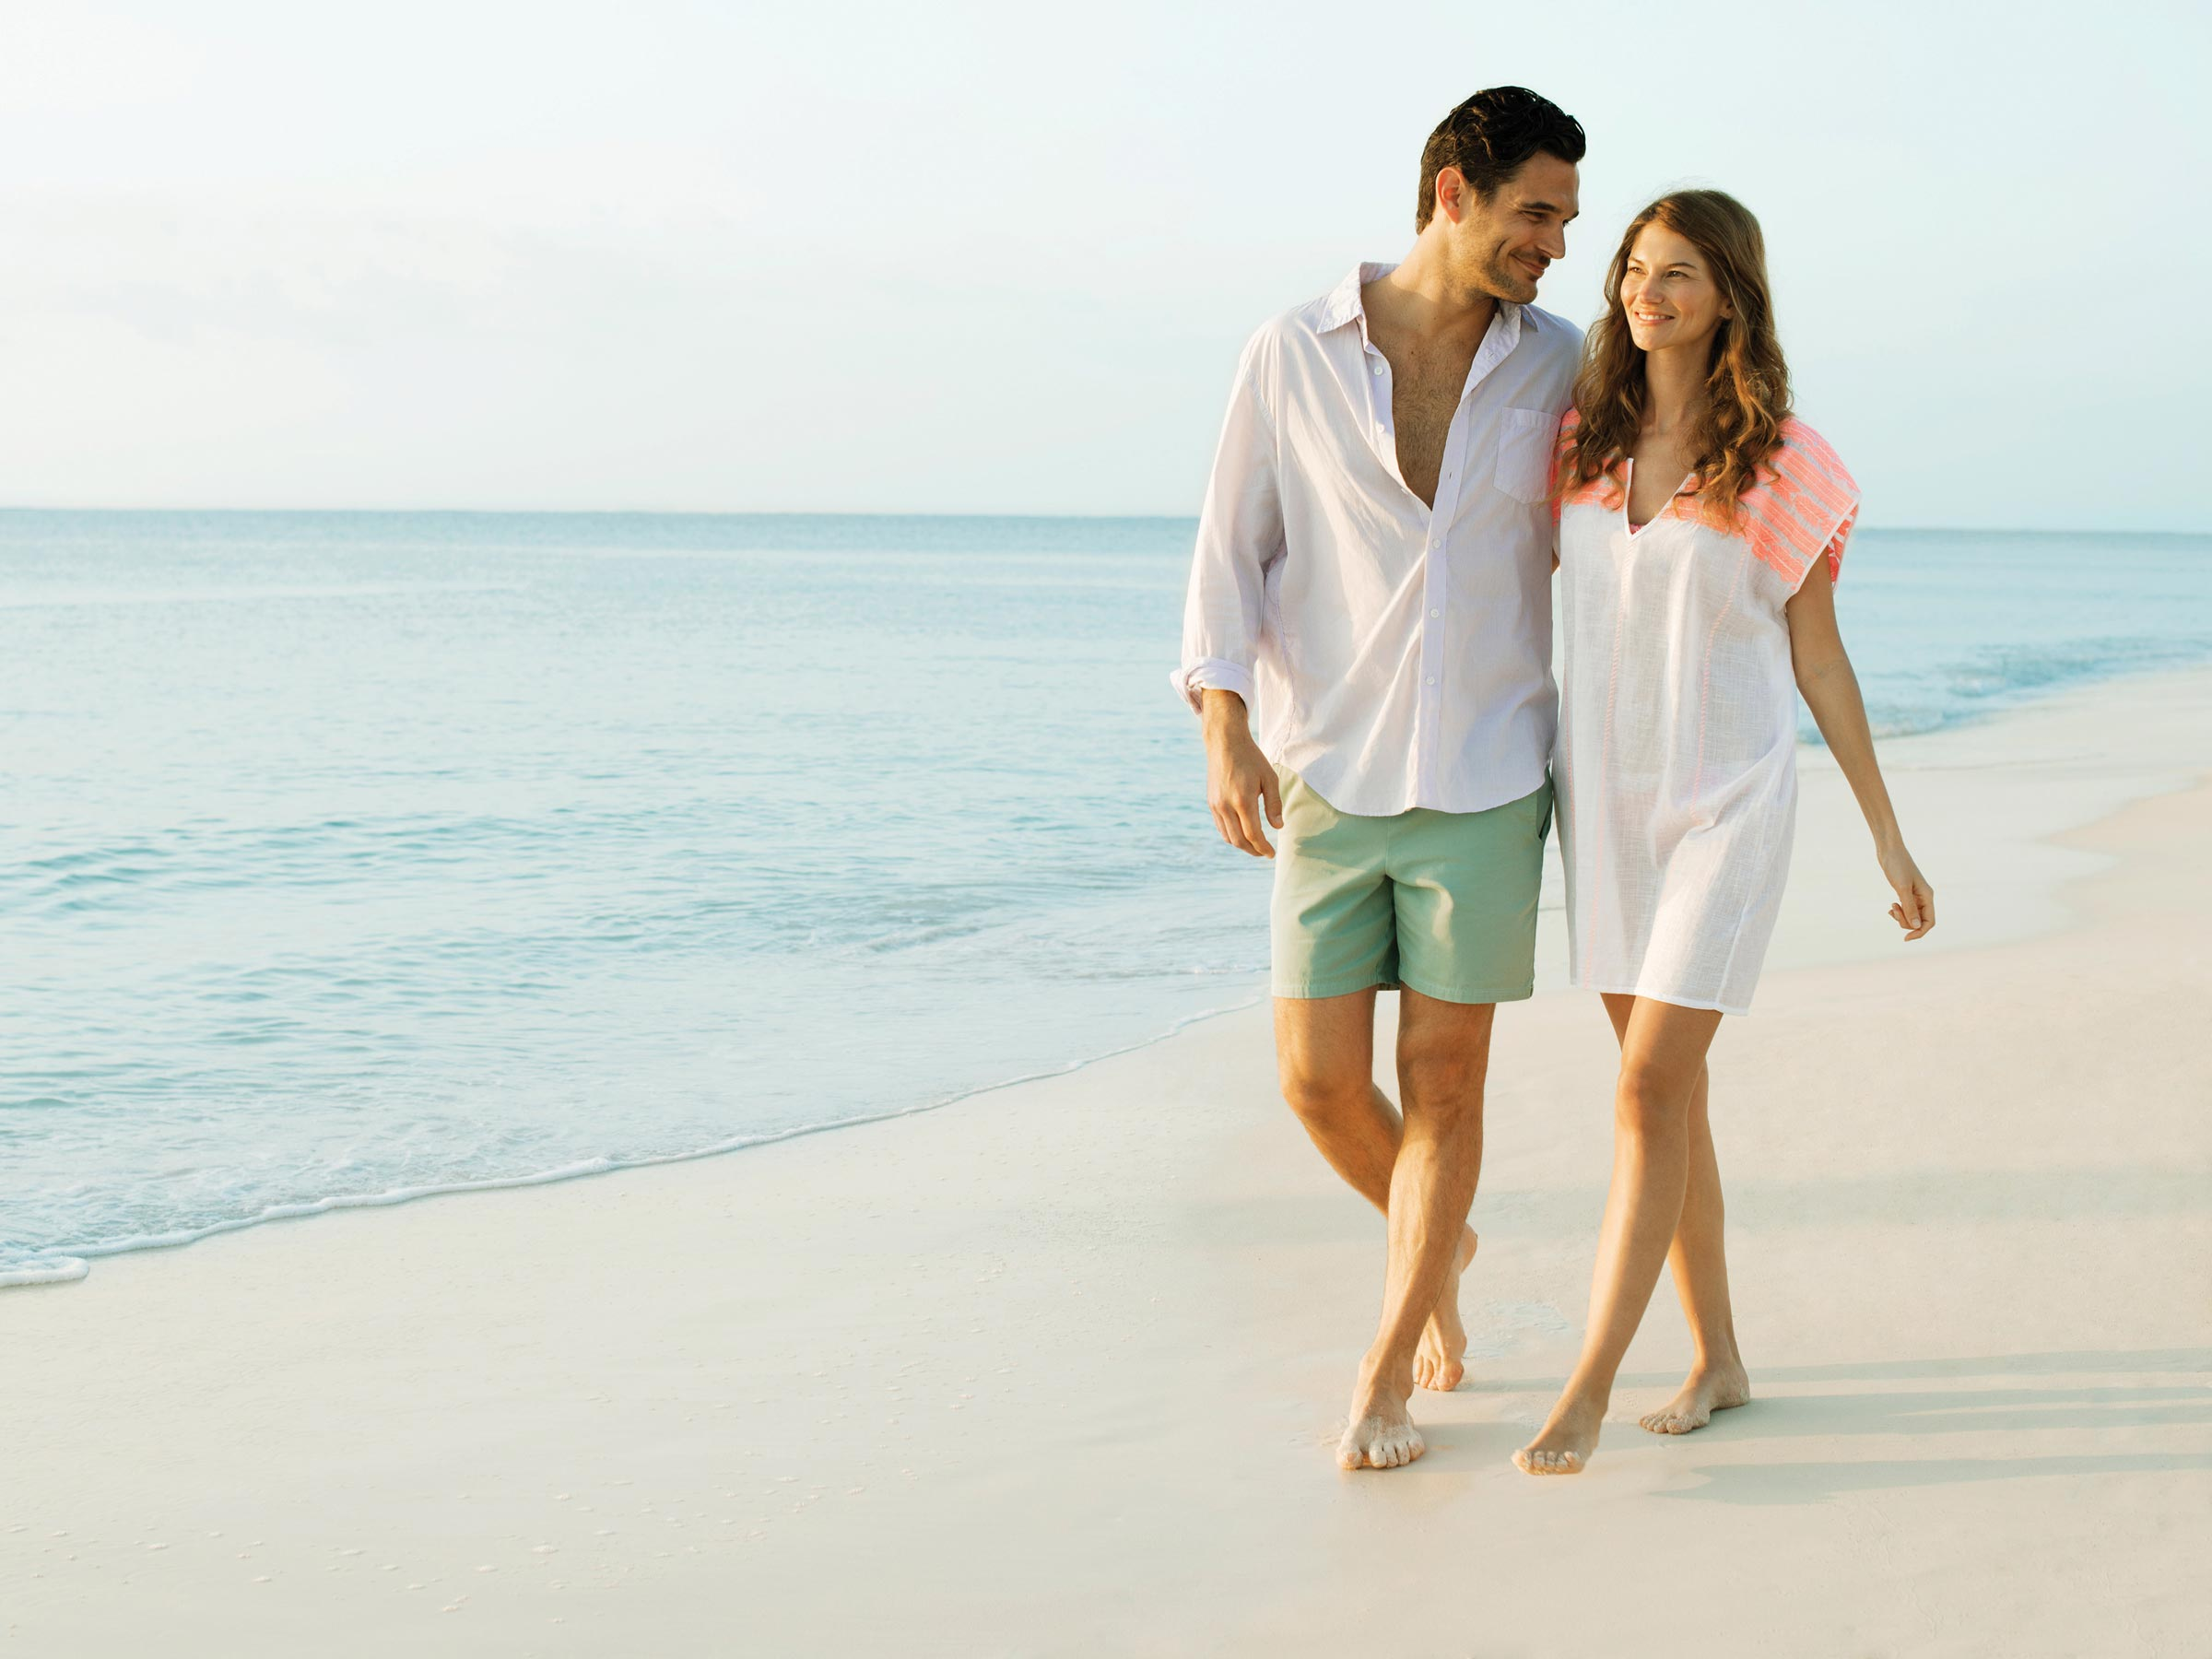 Valentines Day Vacation Deal at Excellence Riviera Cancun